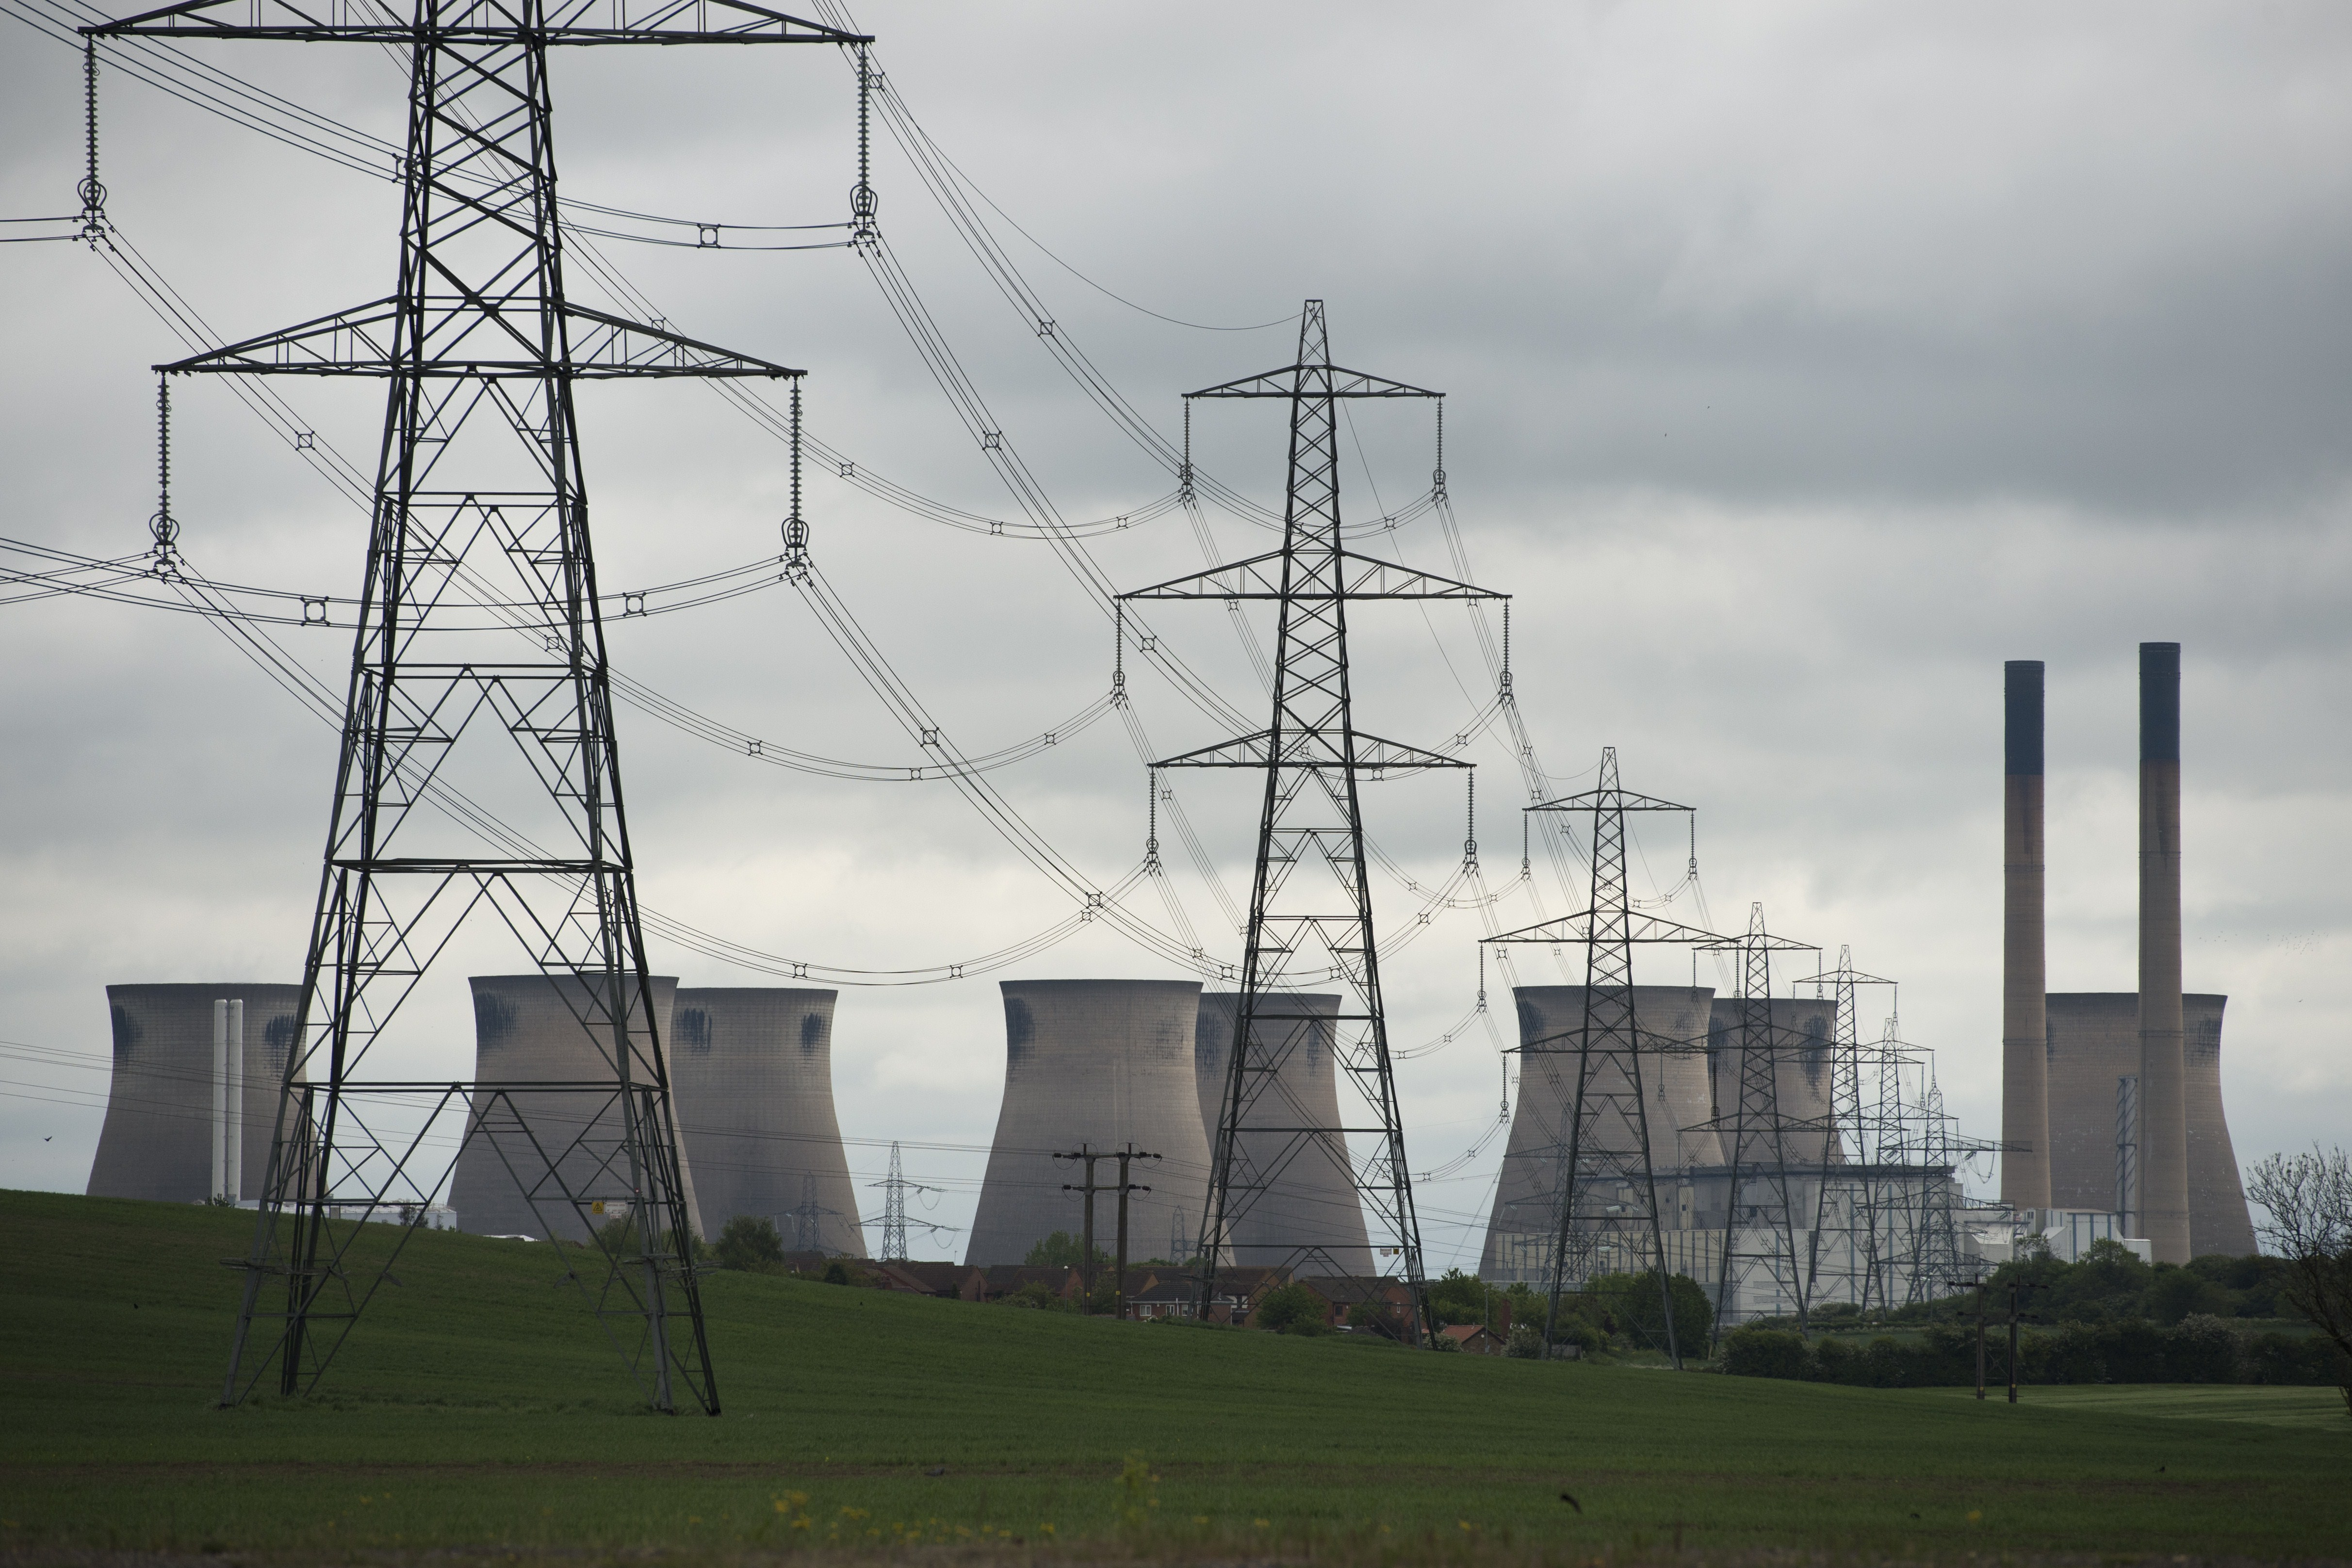 SSE in talks to sell energy retail business to Ovo Energy